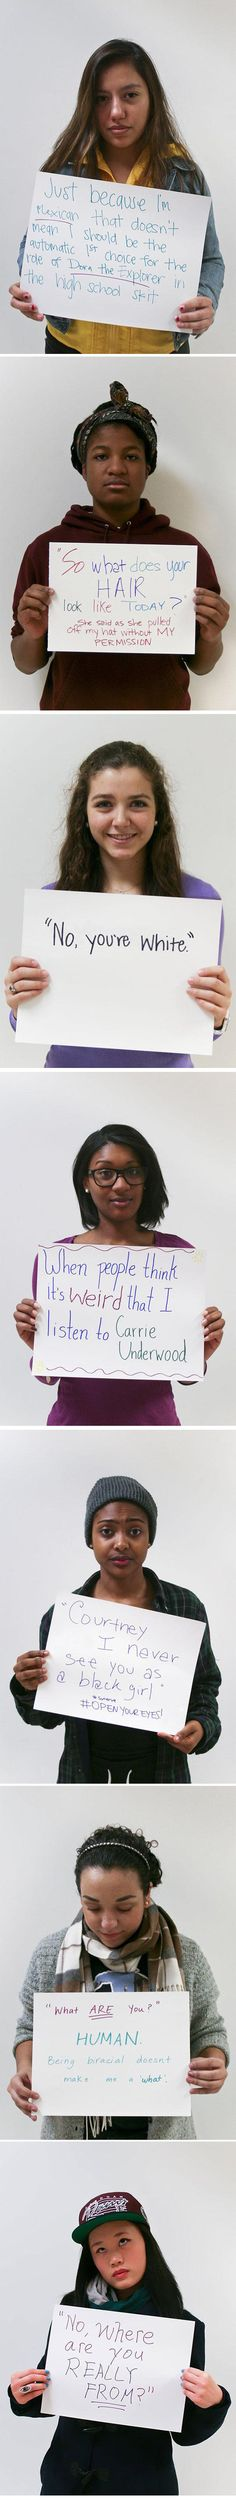 Young people being discriminated...   Not All people know the differences or how a person truly feels when asked a question or comment said, we need to inform each other. There are times I have asked one of my best friends who is African American questions that she laughs at but I ask because I don't know! Then times I have asked transgender person questions because before meeting that person I had never even that I know of met a transgender and I wanted to learn. We need educate all! <3=<3